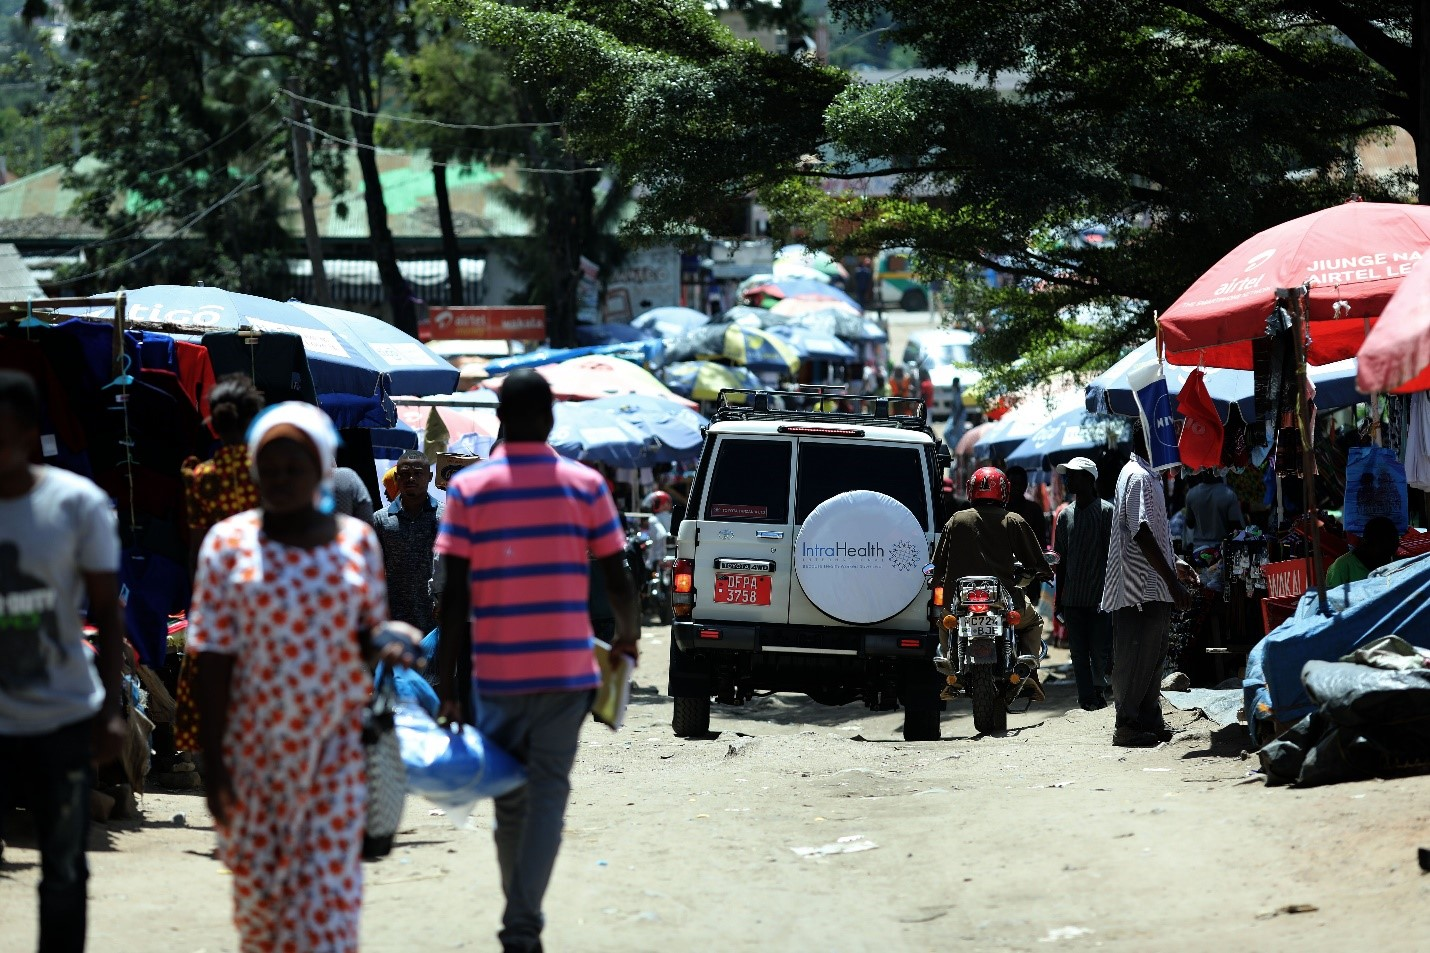 A Tohara Plus project car passes through a marketplace, distributing leaflets and flyers on HIV prevention in the field. The driver uses a speakerphone mounted on the car to raise community awareness about services available at the nearby health facility and outreach sites. Photo by Josh Estey for IntraHealth International.